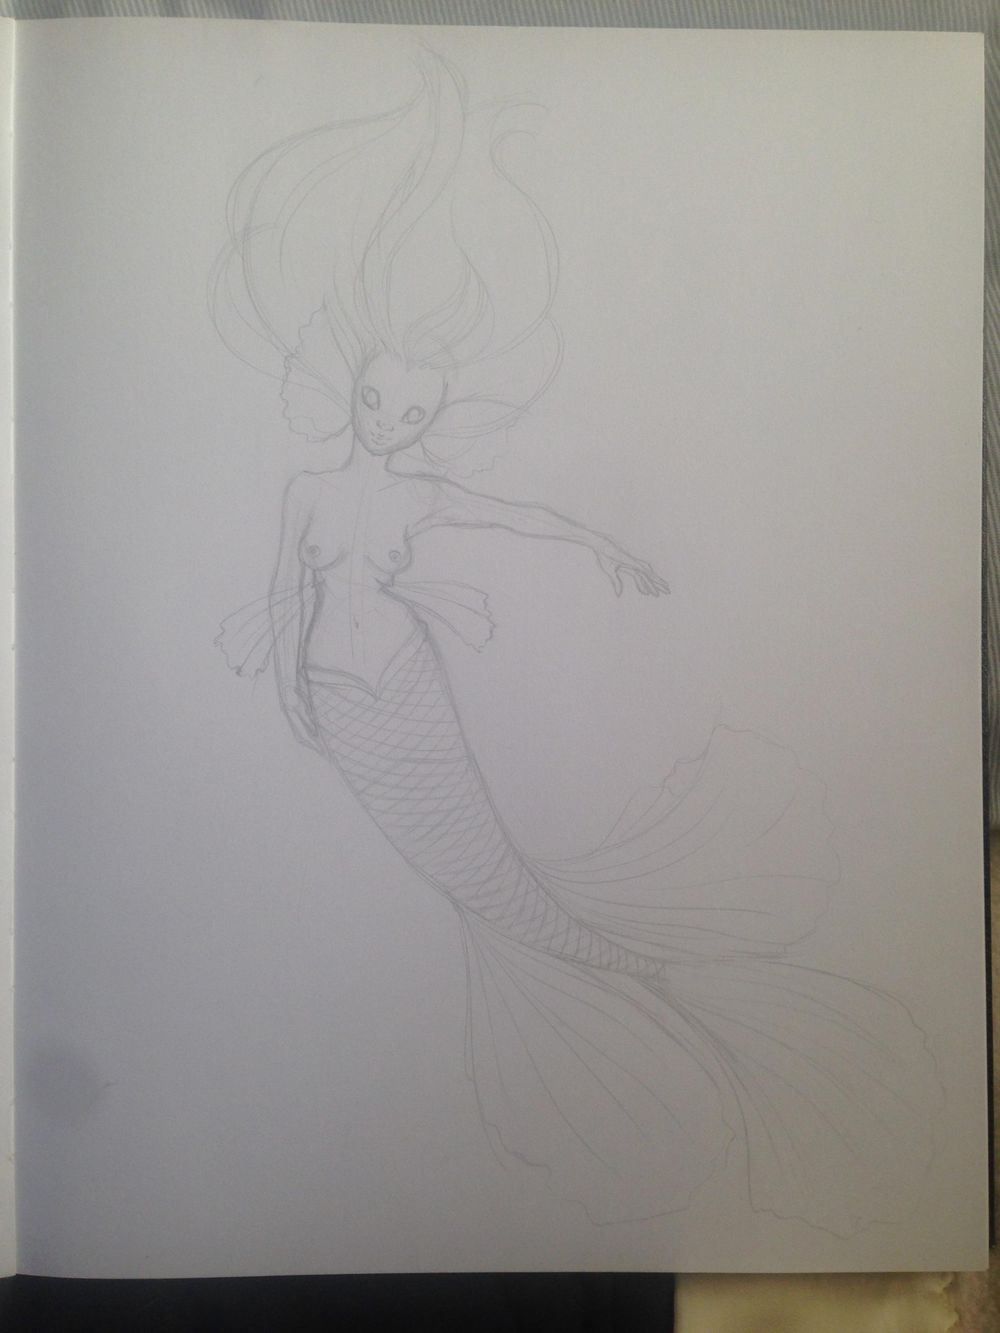 Mermaids - image 1 - student project